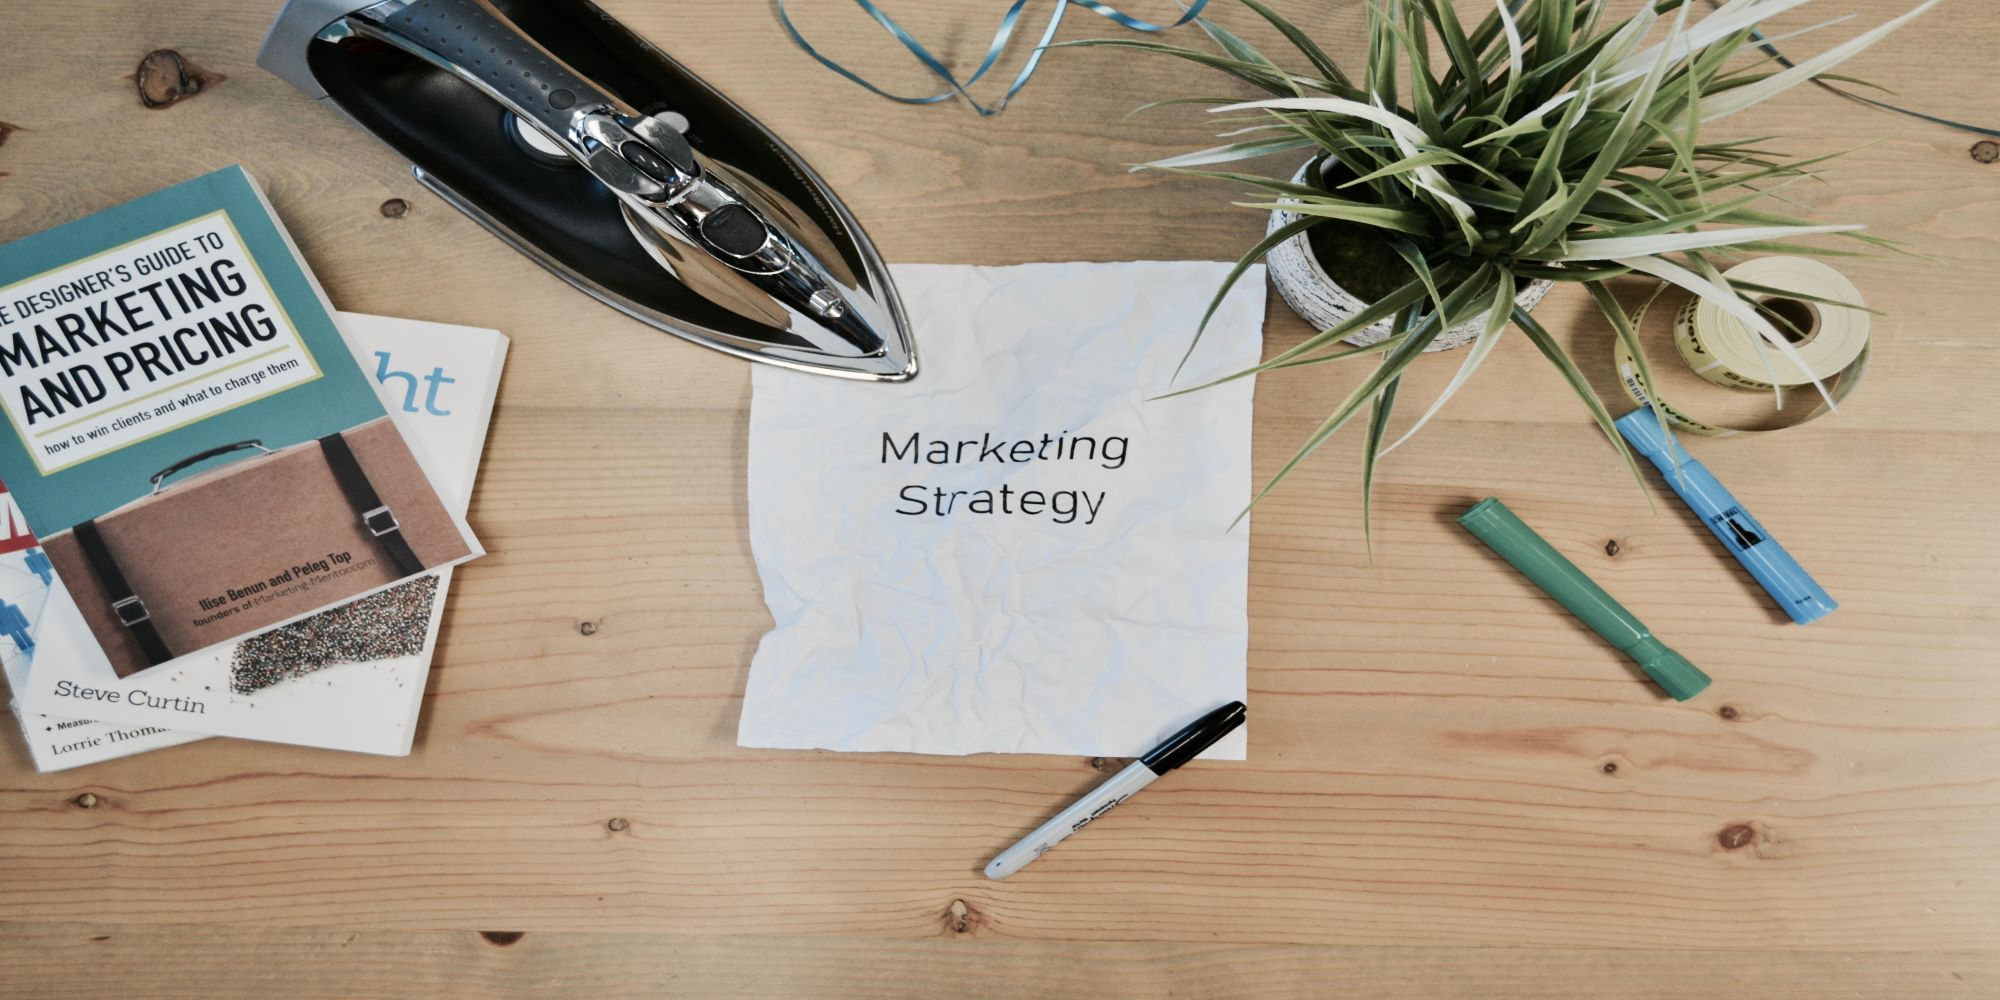 International Marketing News: Notable Marketing Strategy Stats Stemming from the Impacts of COVID-19